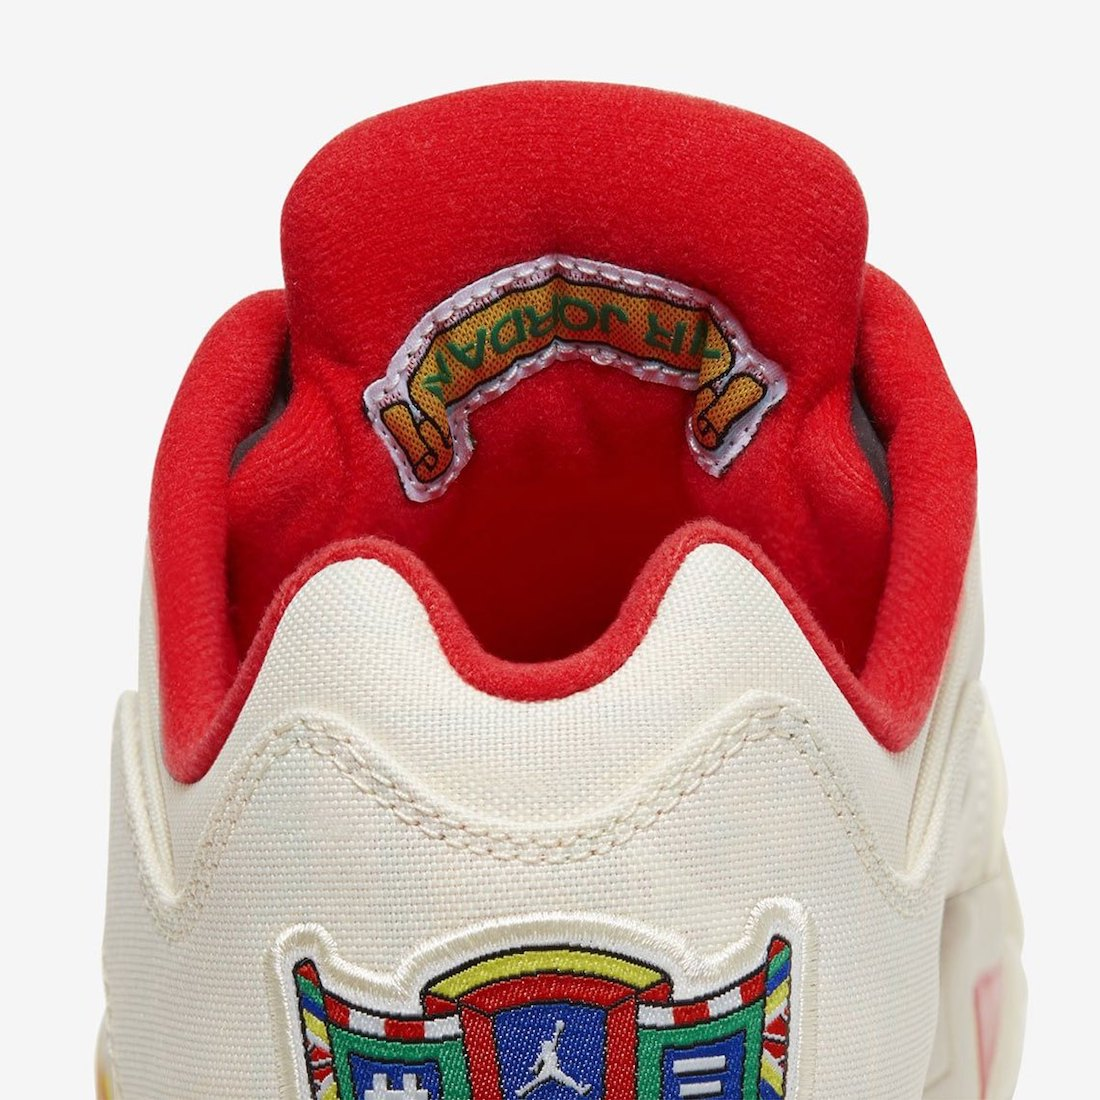 Air-Jordan-5-Low-CNY-Chinese-New-Year-DD2240-100-Release-Date-6